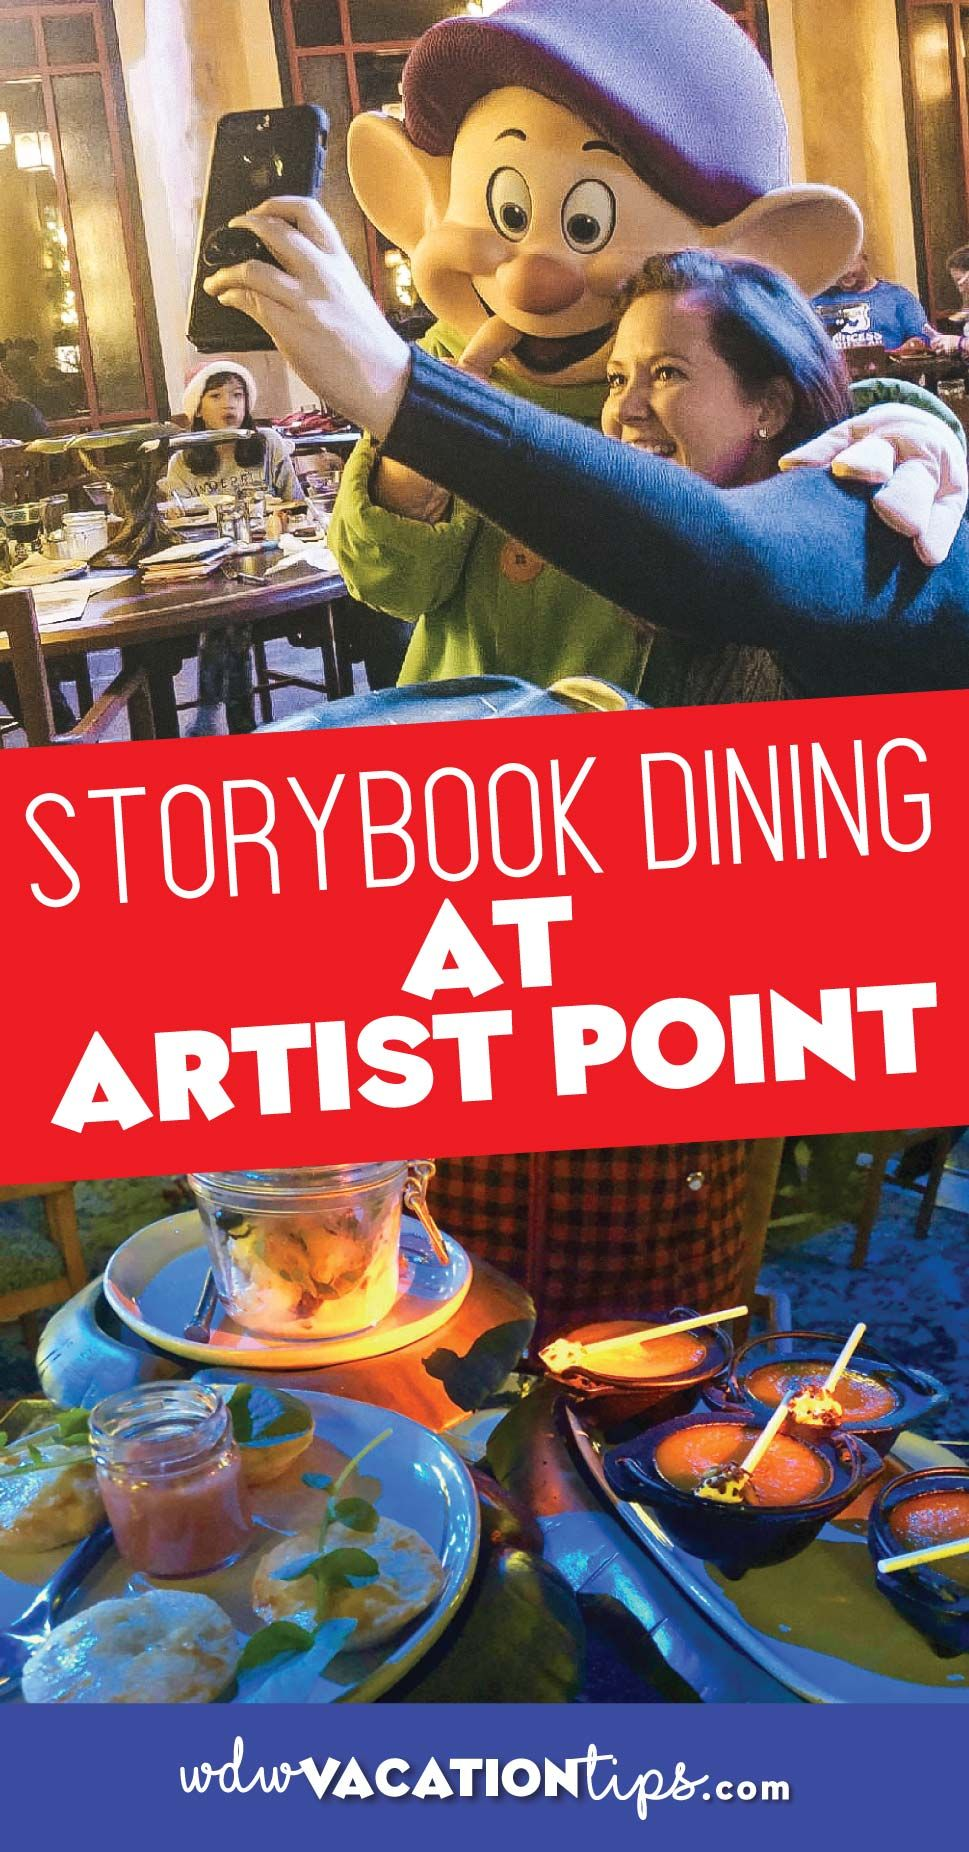 Swell Storybook Dining At Artist Point Top Wdw Disney World Home Interior And Landscaping Synyenasavecom